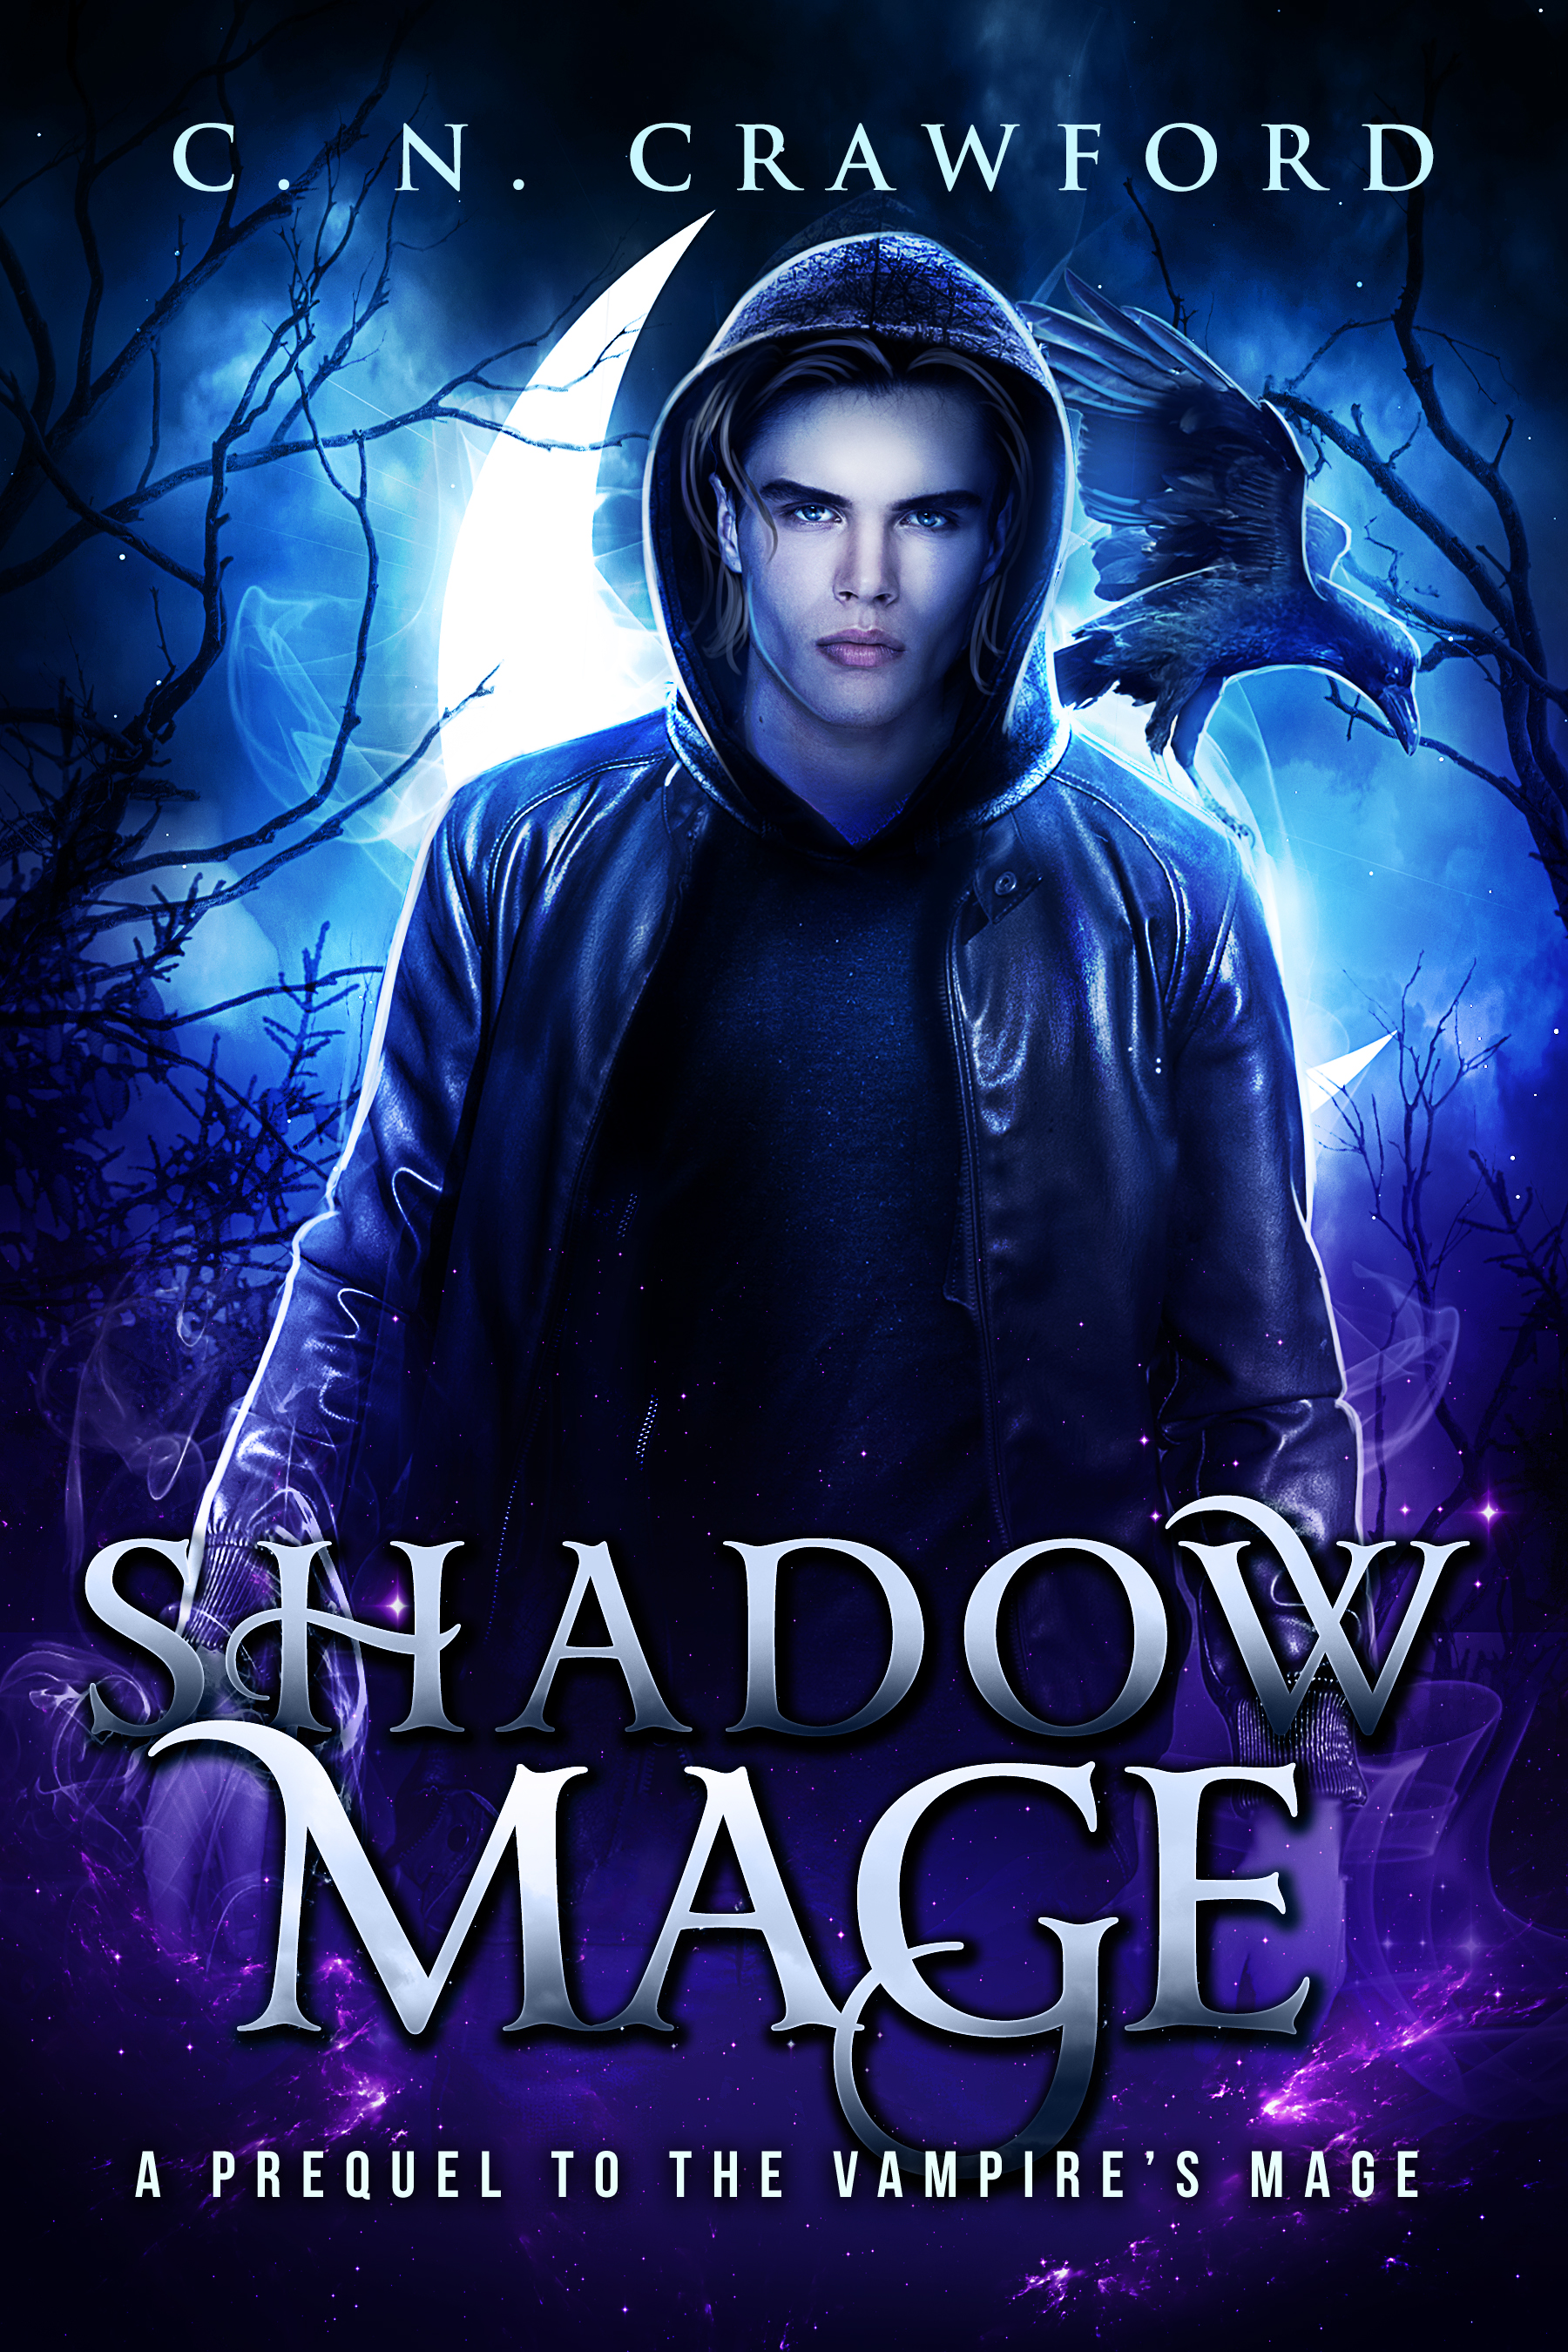 Book 1.1: Shadow Mage